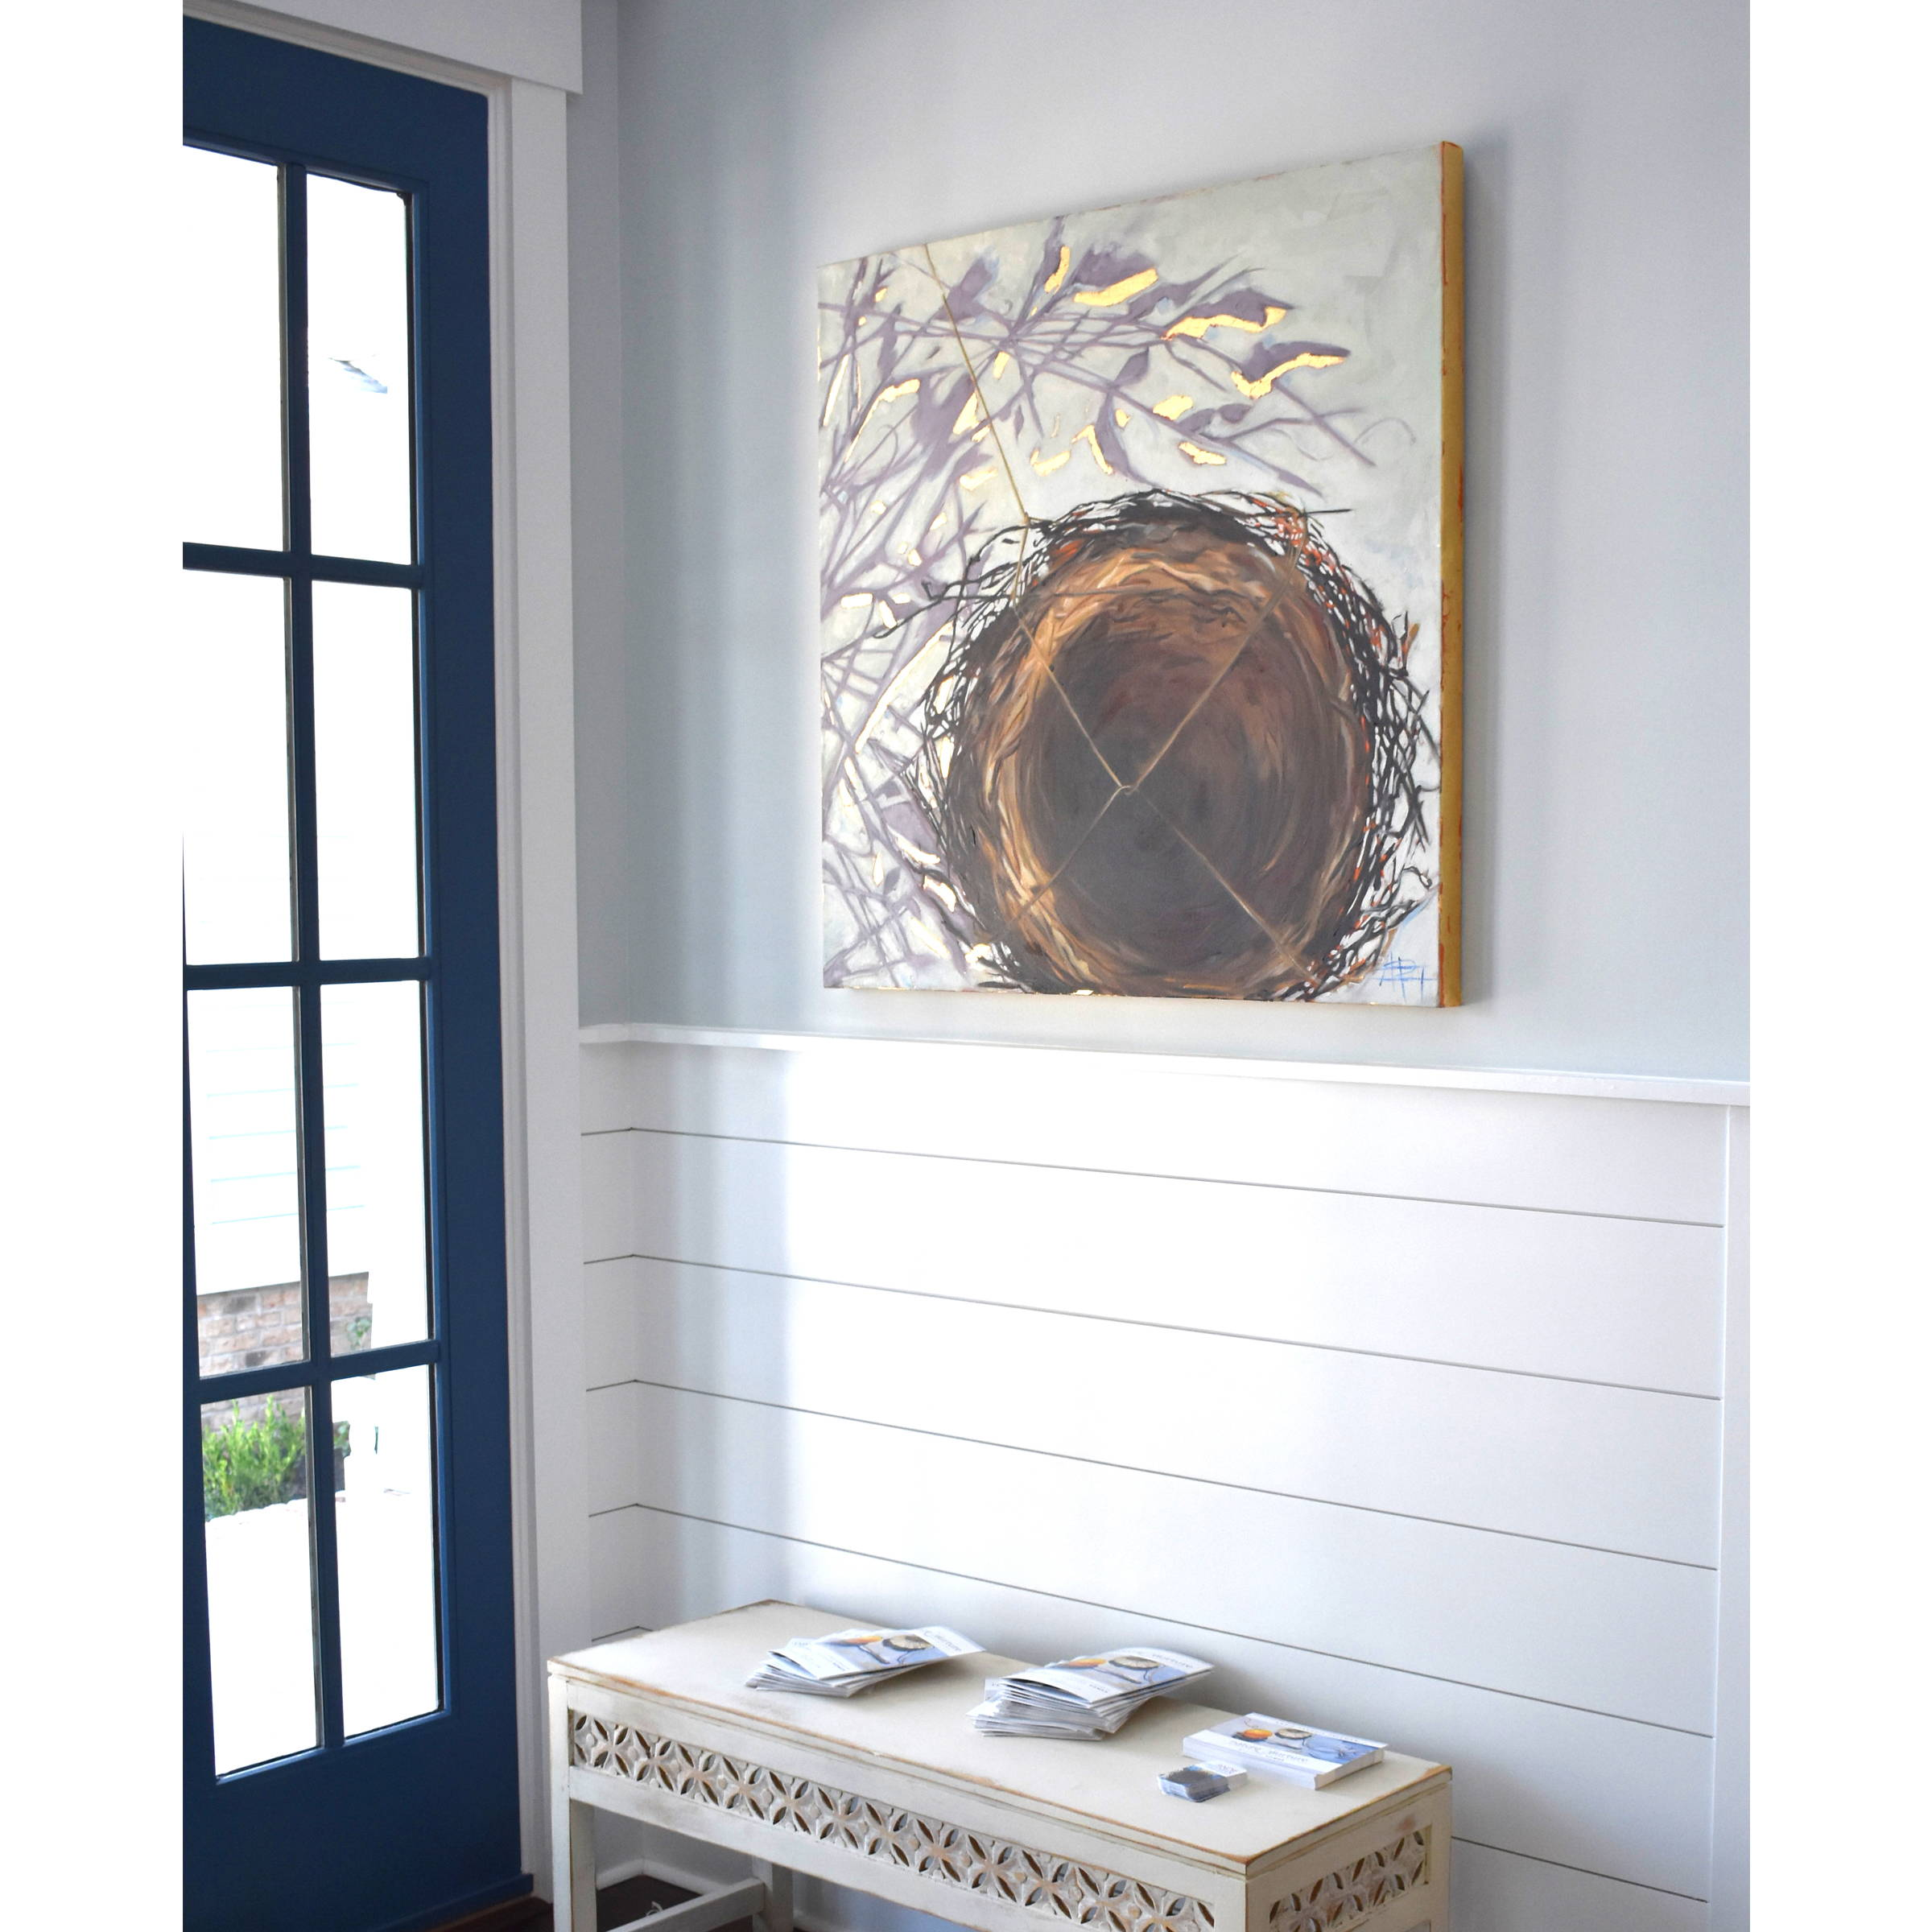 Nest with Muted Shadows oil painting by Andie Paradis Freeman of farmhouse chic and modern nest